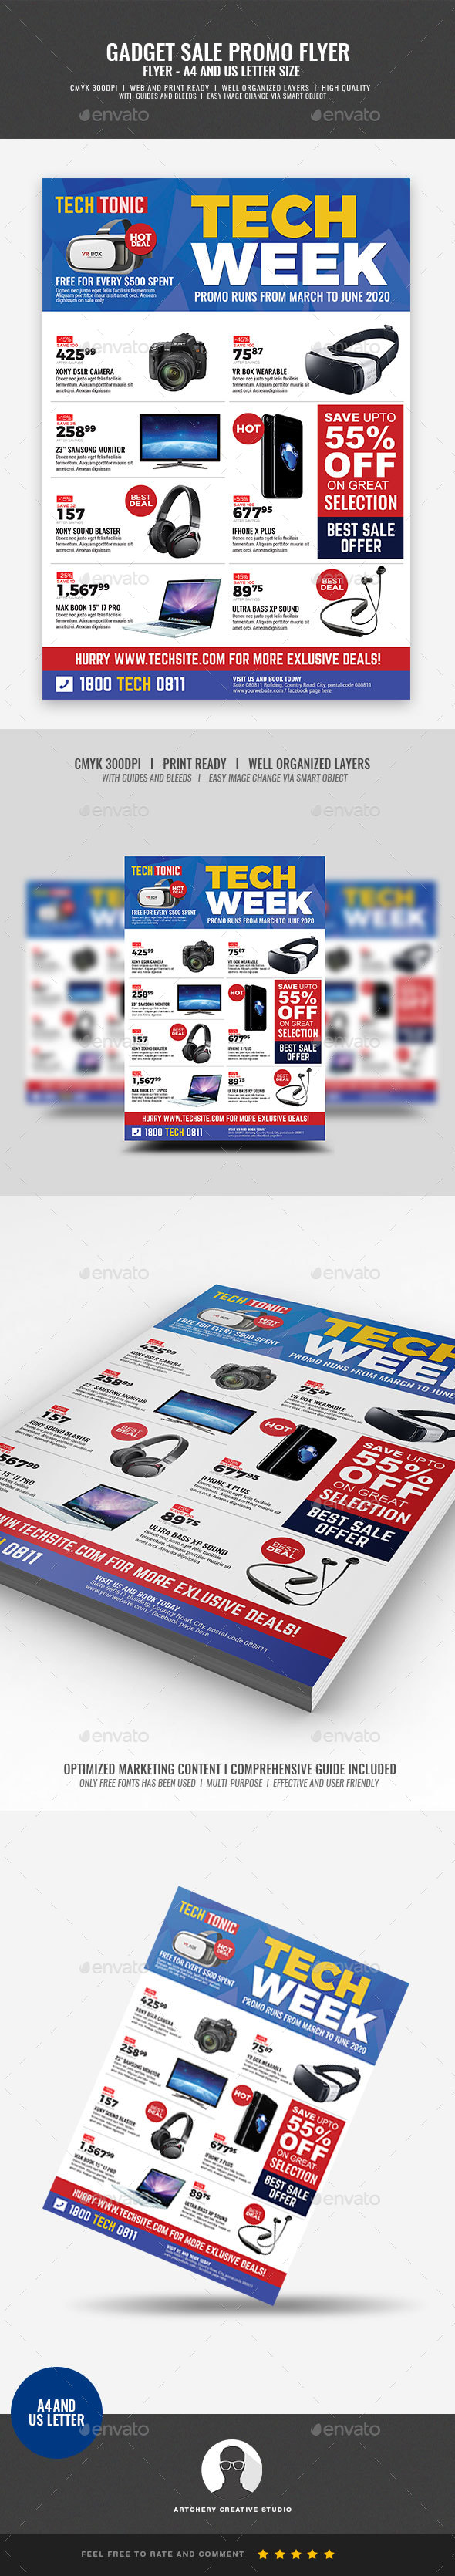 Gadget Sale Flyer - Corporate Flyers